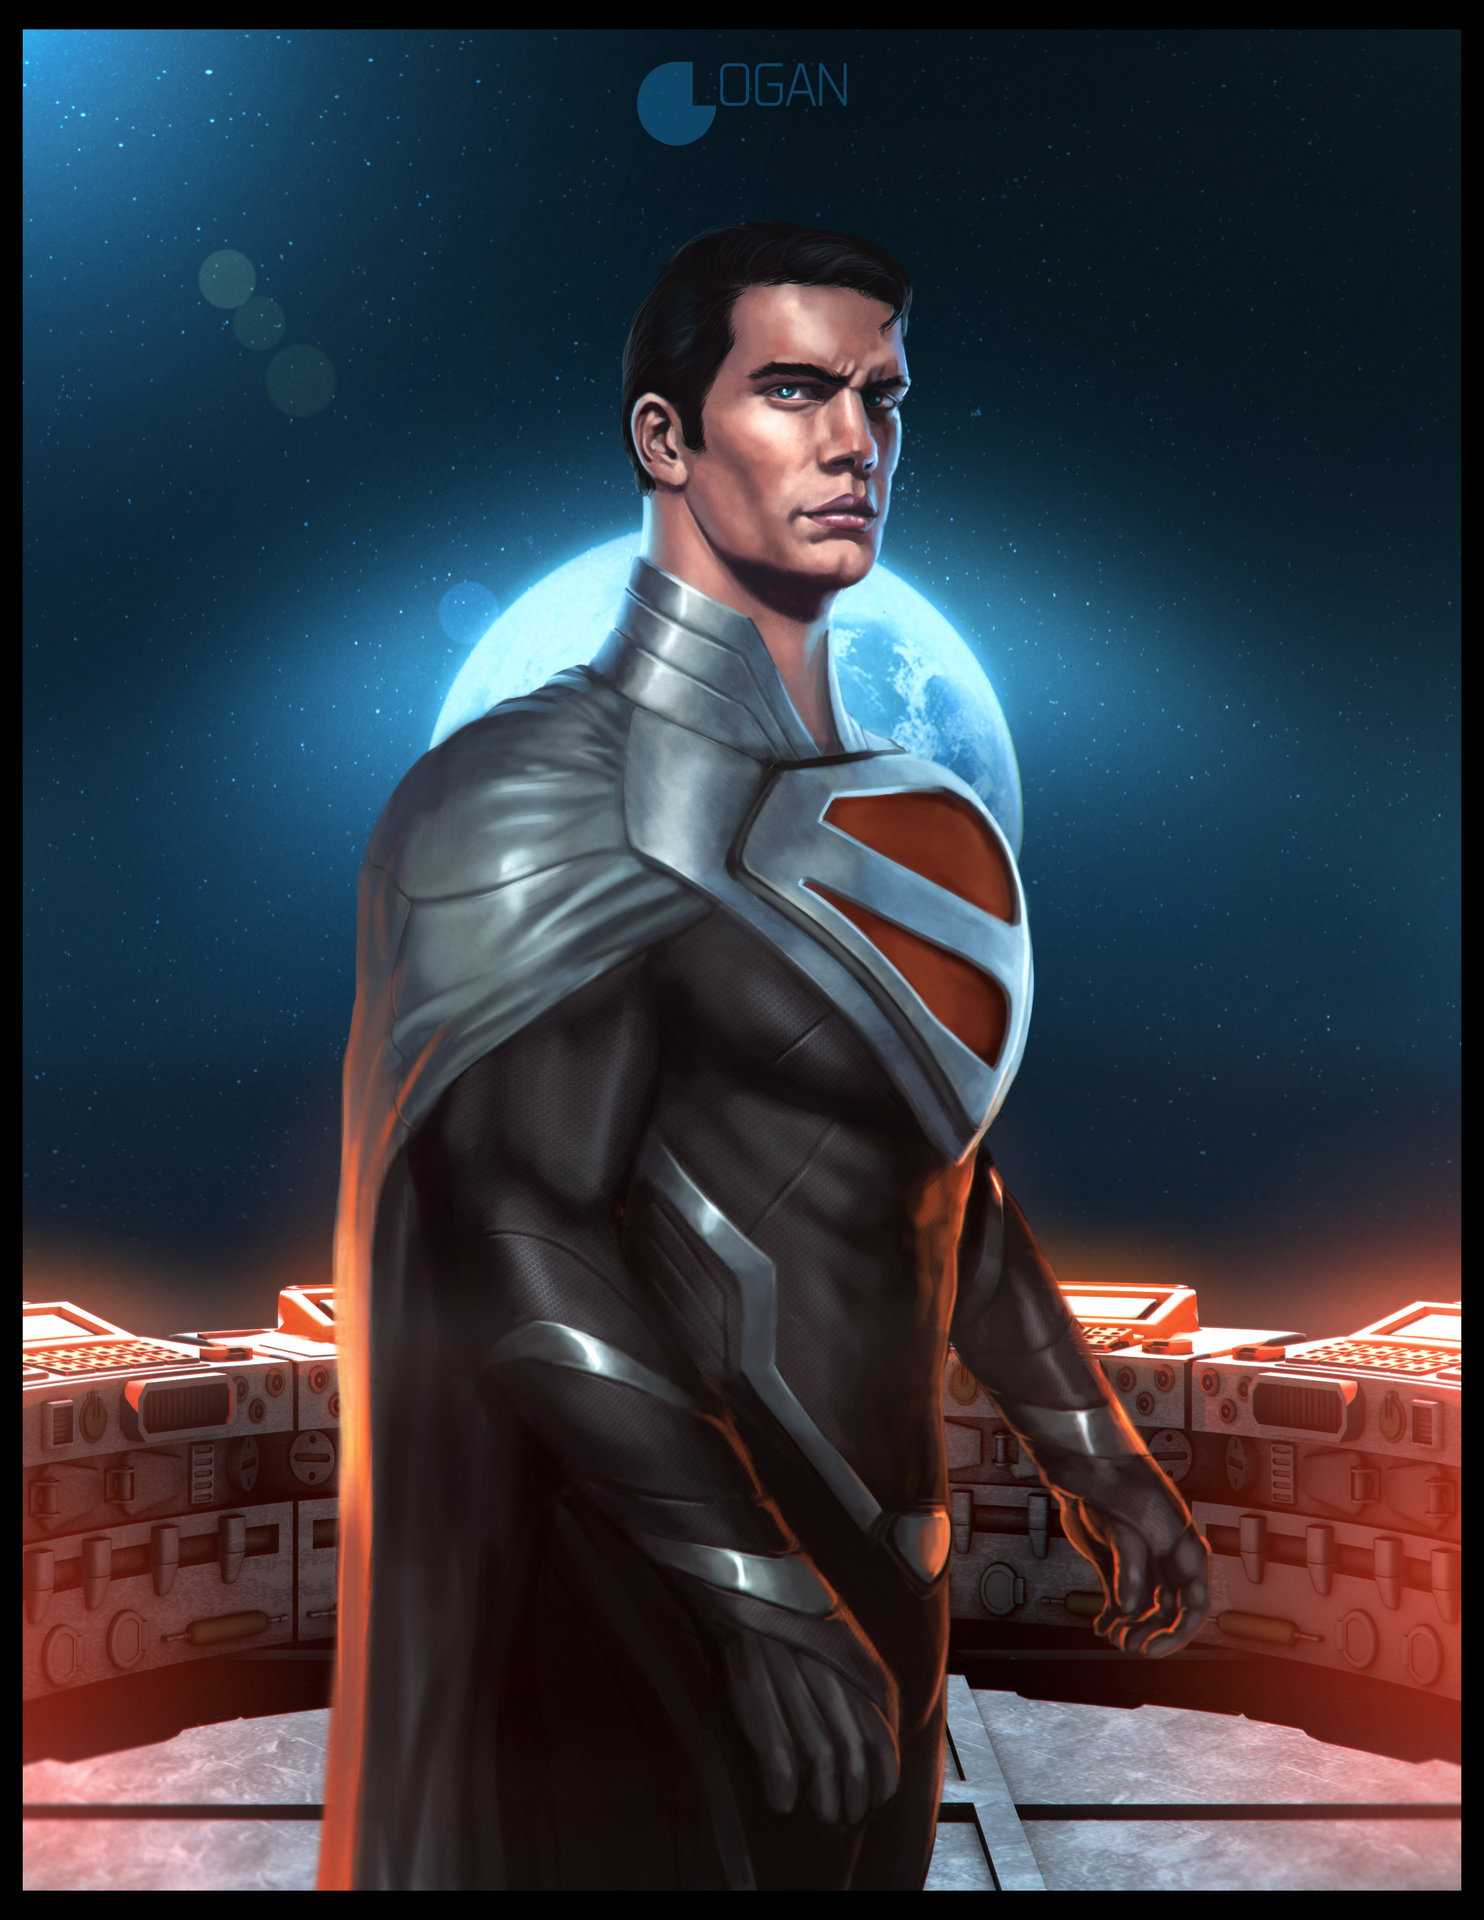 Charles logan superman justice lord full